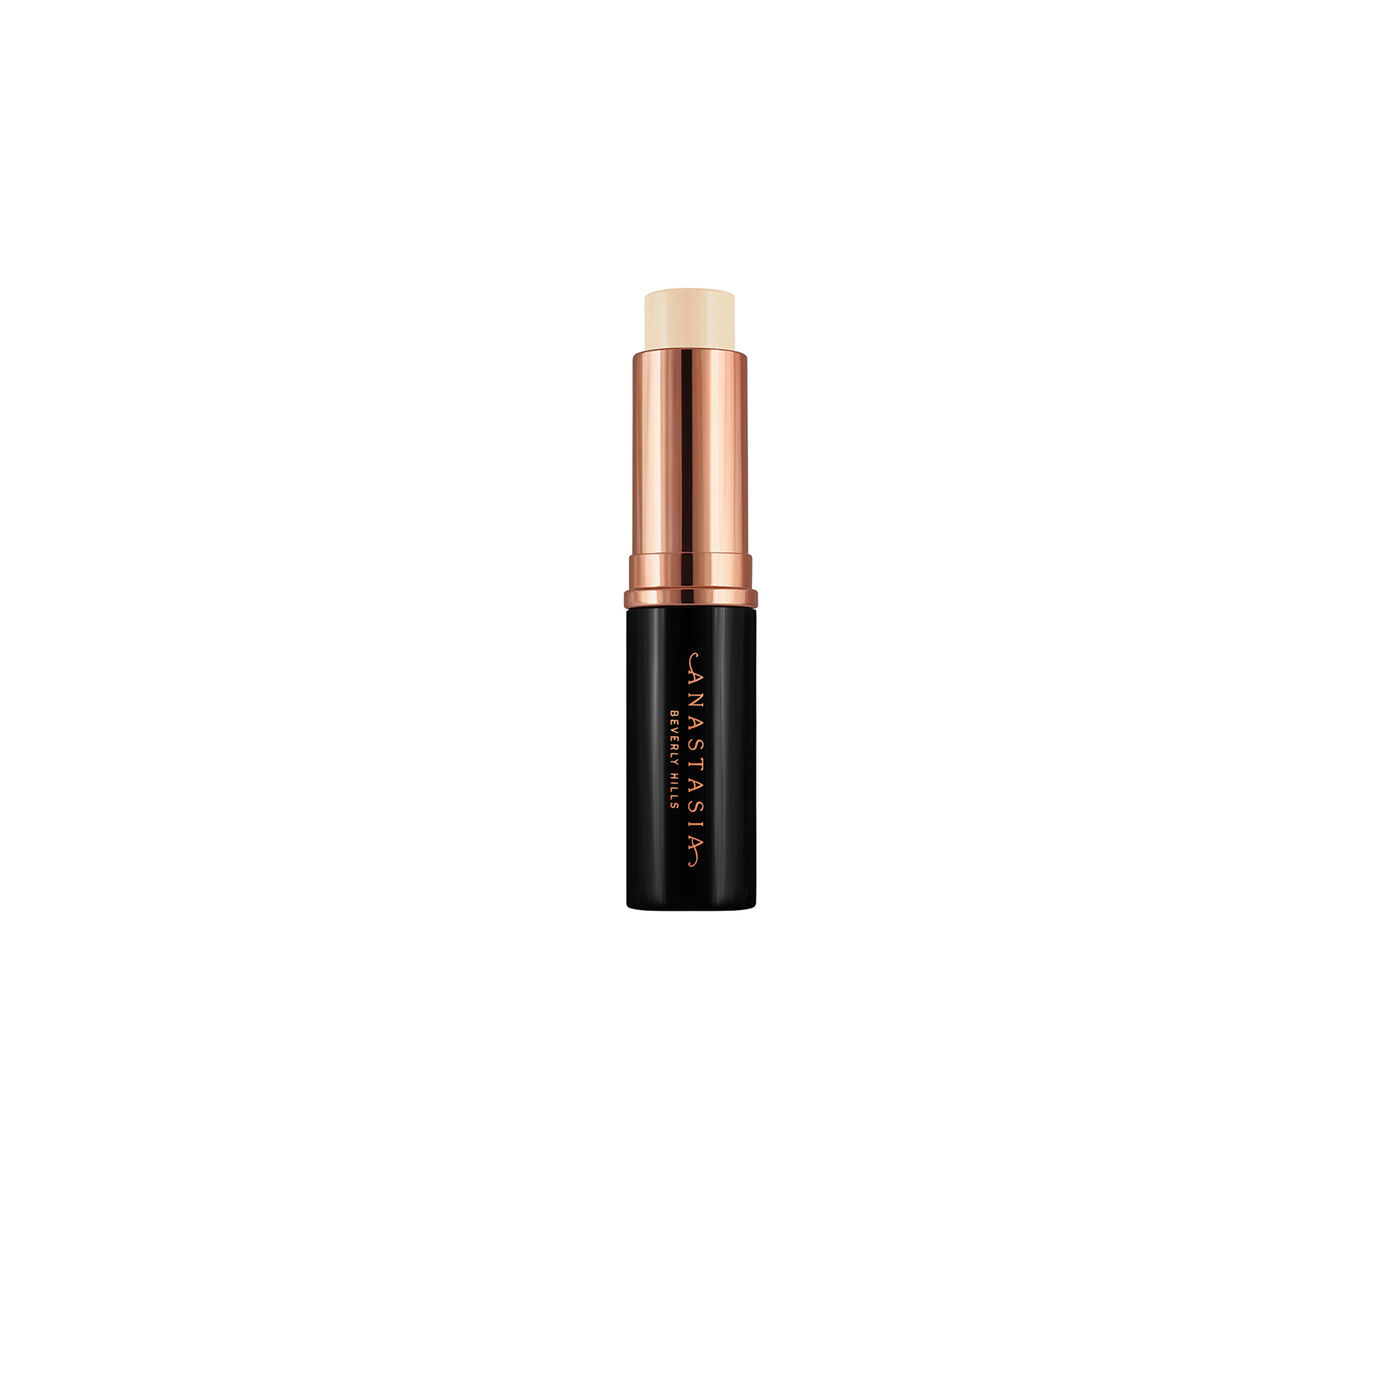 Stick Foundation - Cool Beige